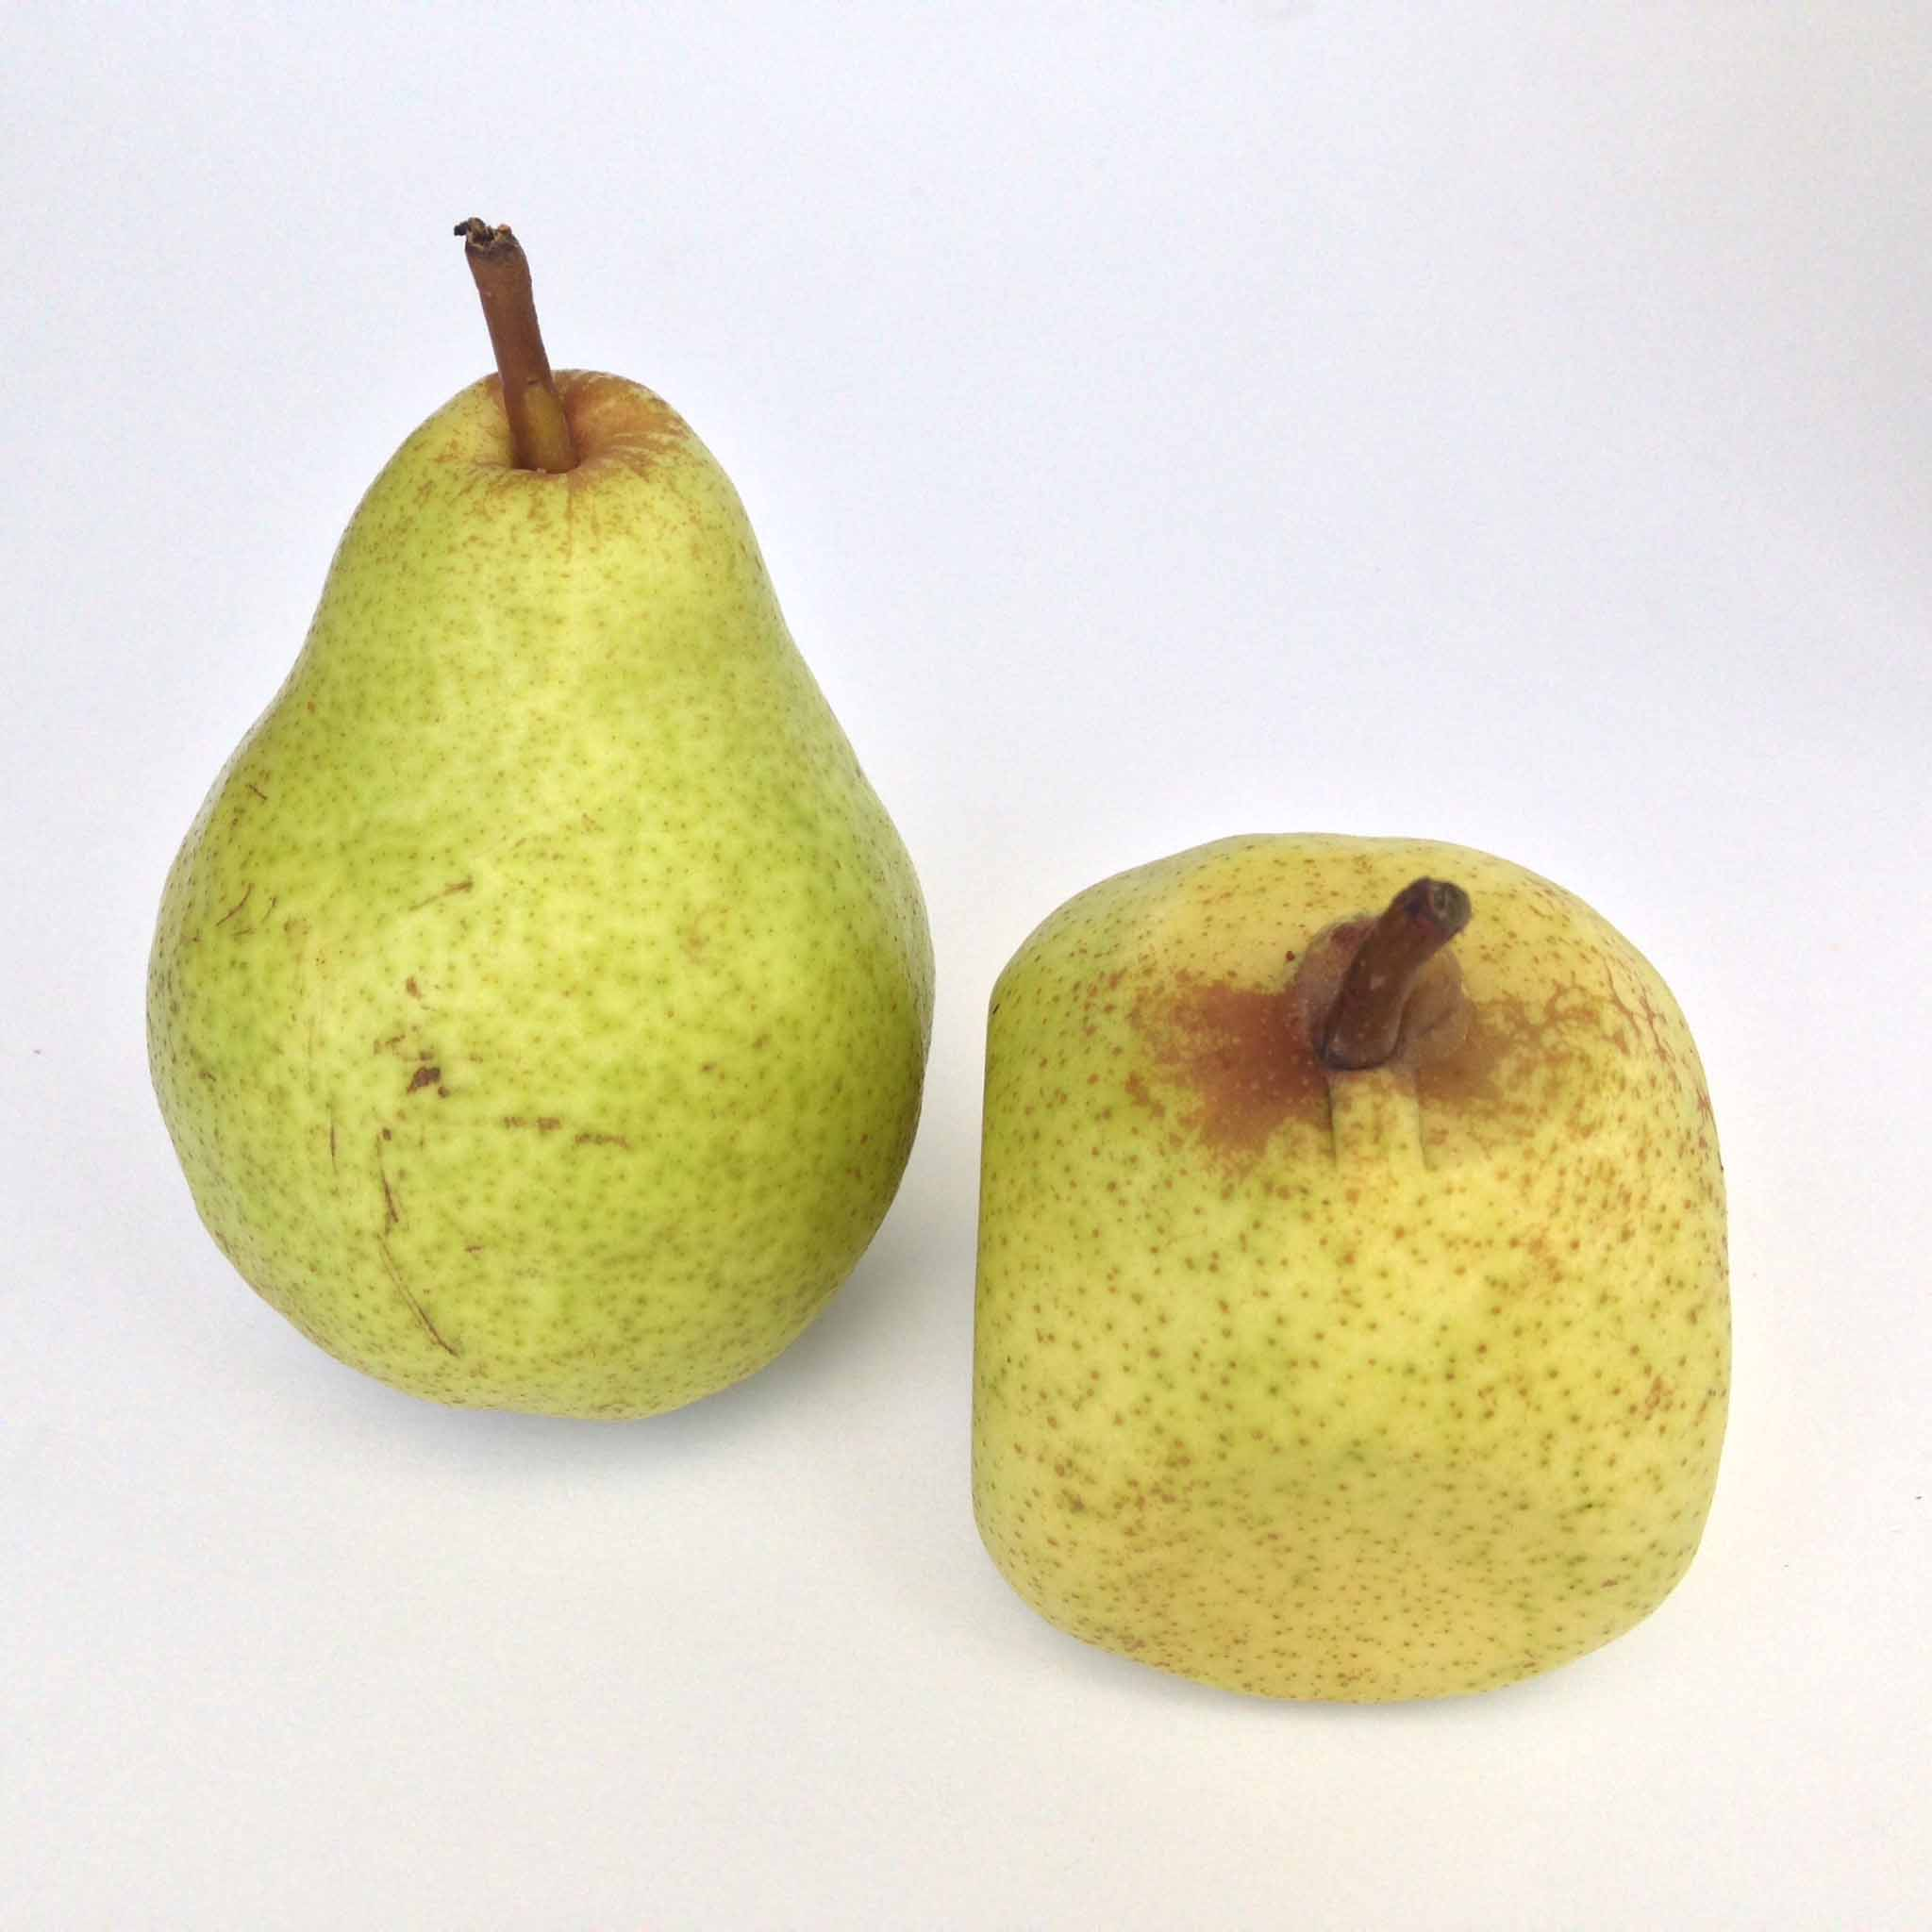 Has Square gone pear-shaped? | VatorNews